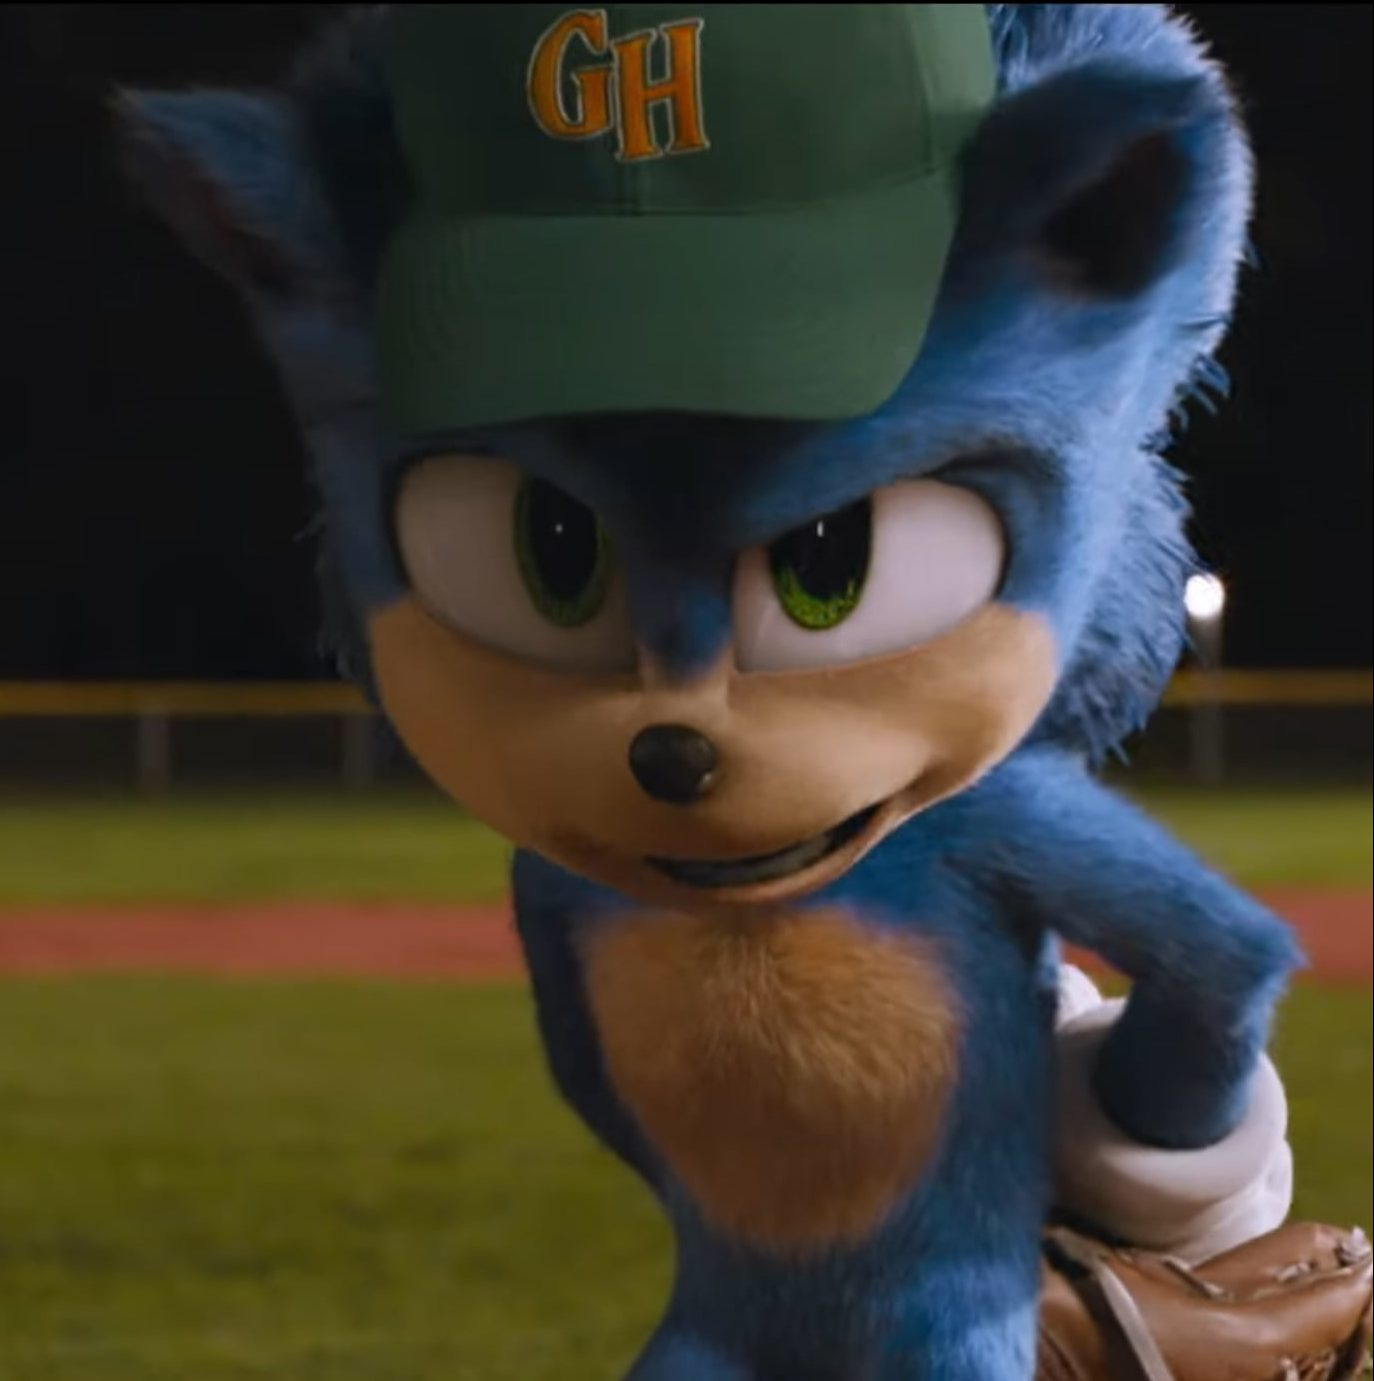 sonic playing baseball e1584014631371 10 Things The Sonic Movie Gets Wrong About The Games - And 10 Things It Gets Right